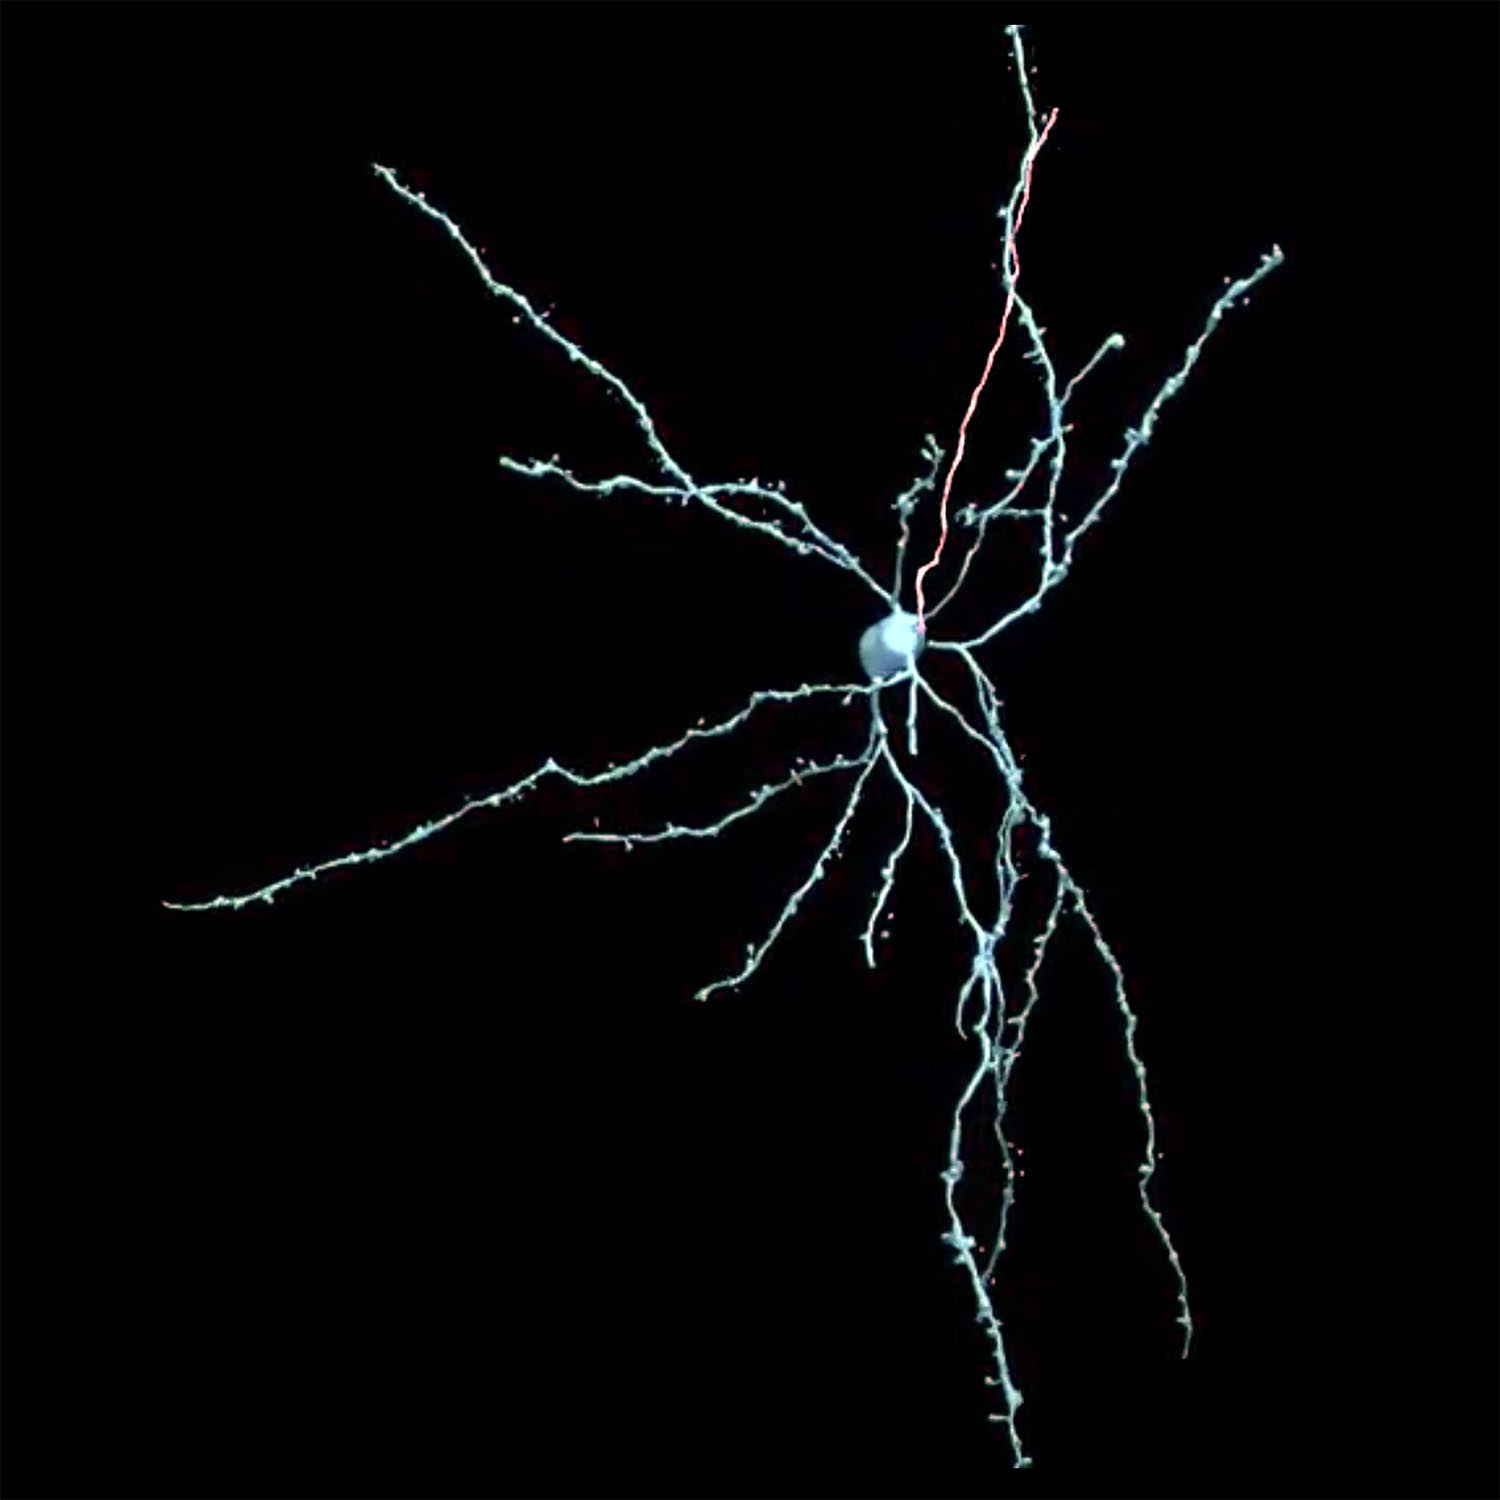 3D reconstruction of central amygdala neuron